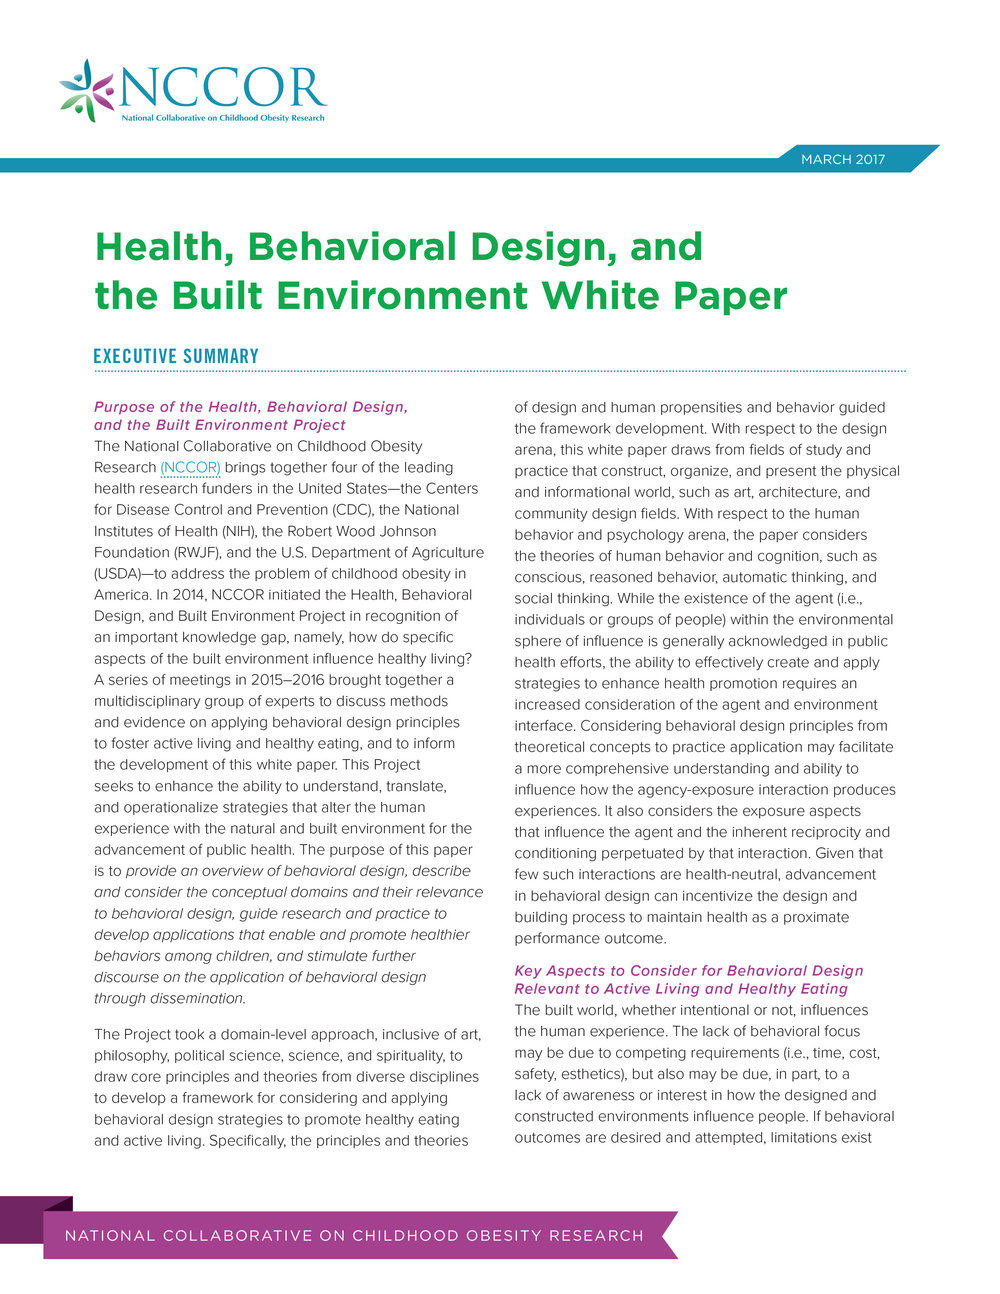 Health, Behavioral Design, and the Built Environment White Paper_Executi...-1.jpg